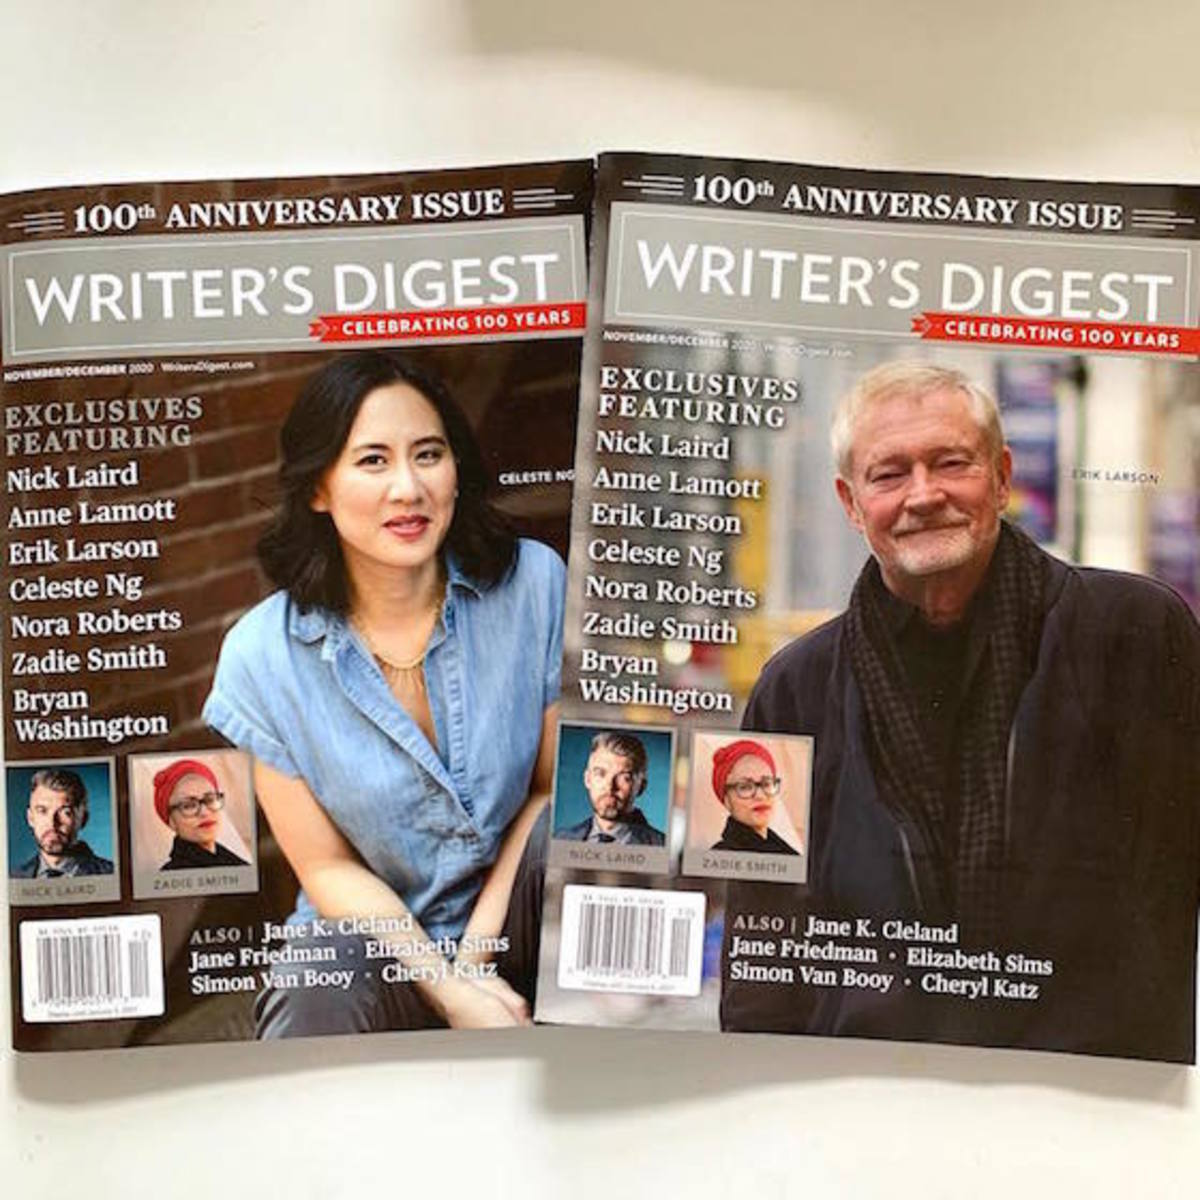 writers_digest_100th_anniversary_issue_both_covers